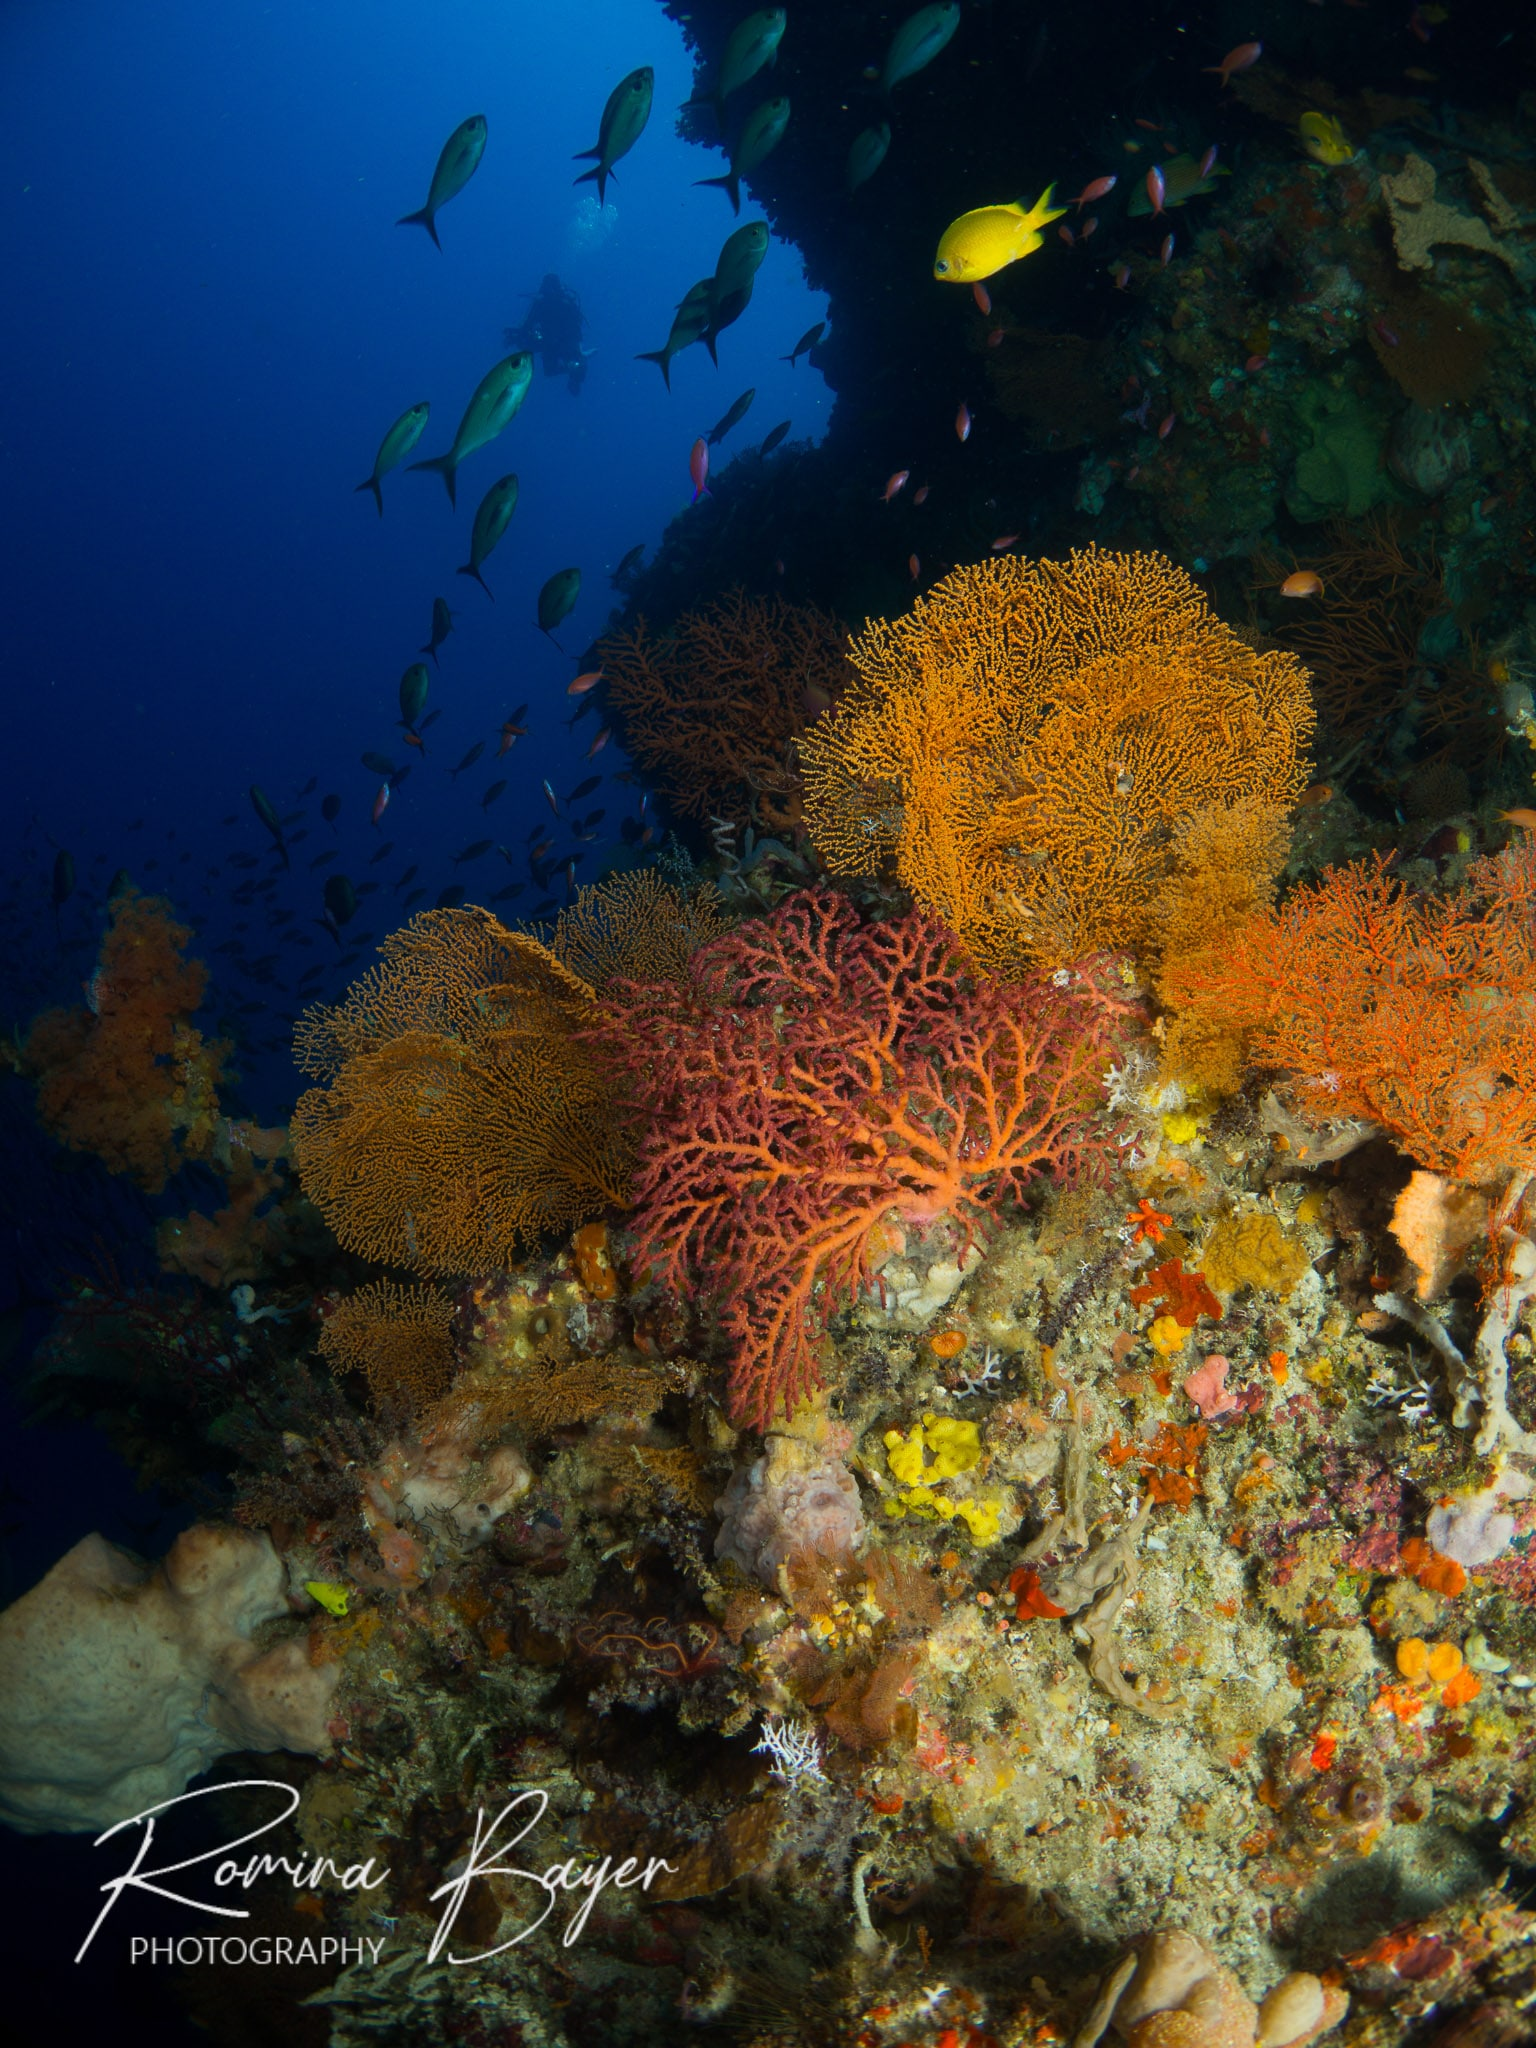 Colorful reef in Alor, Indonesia